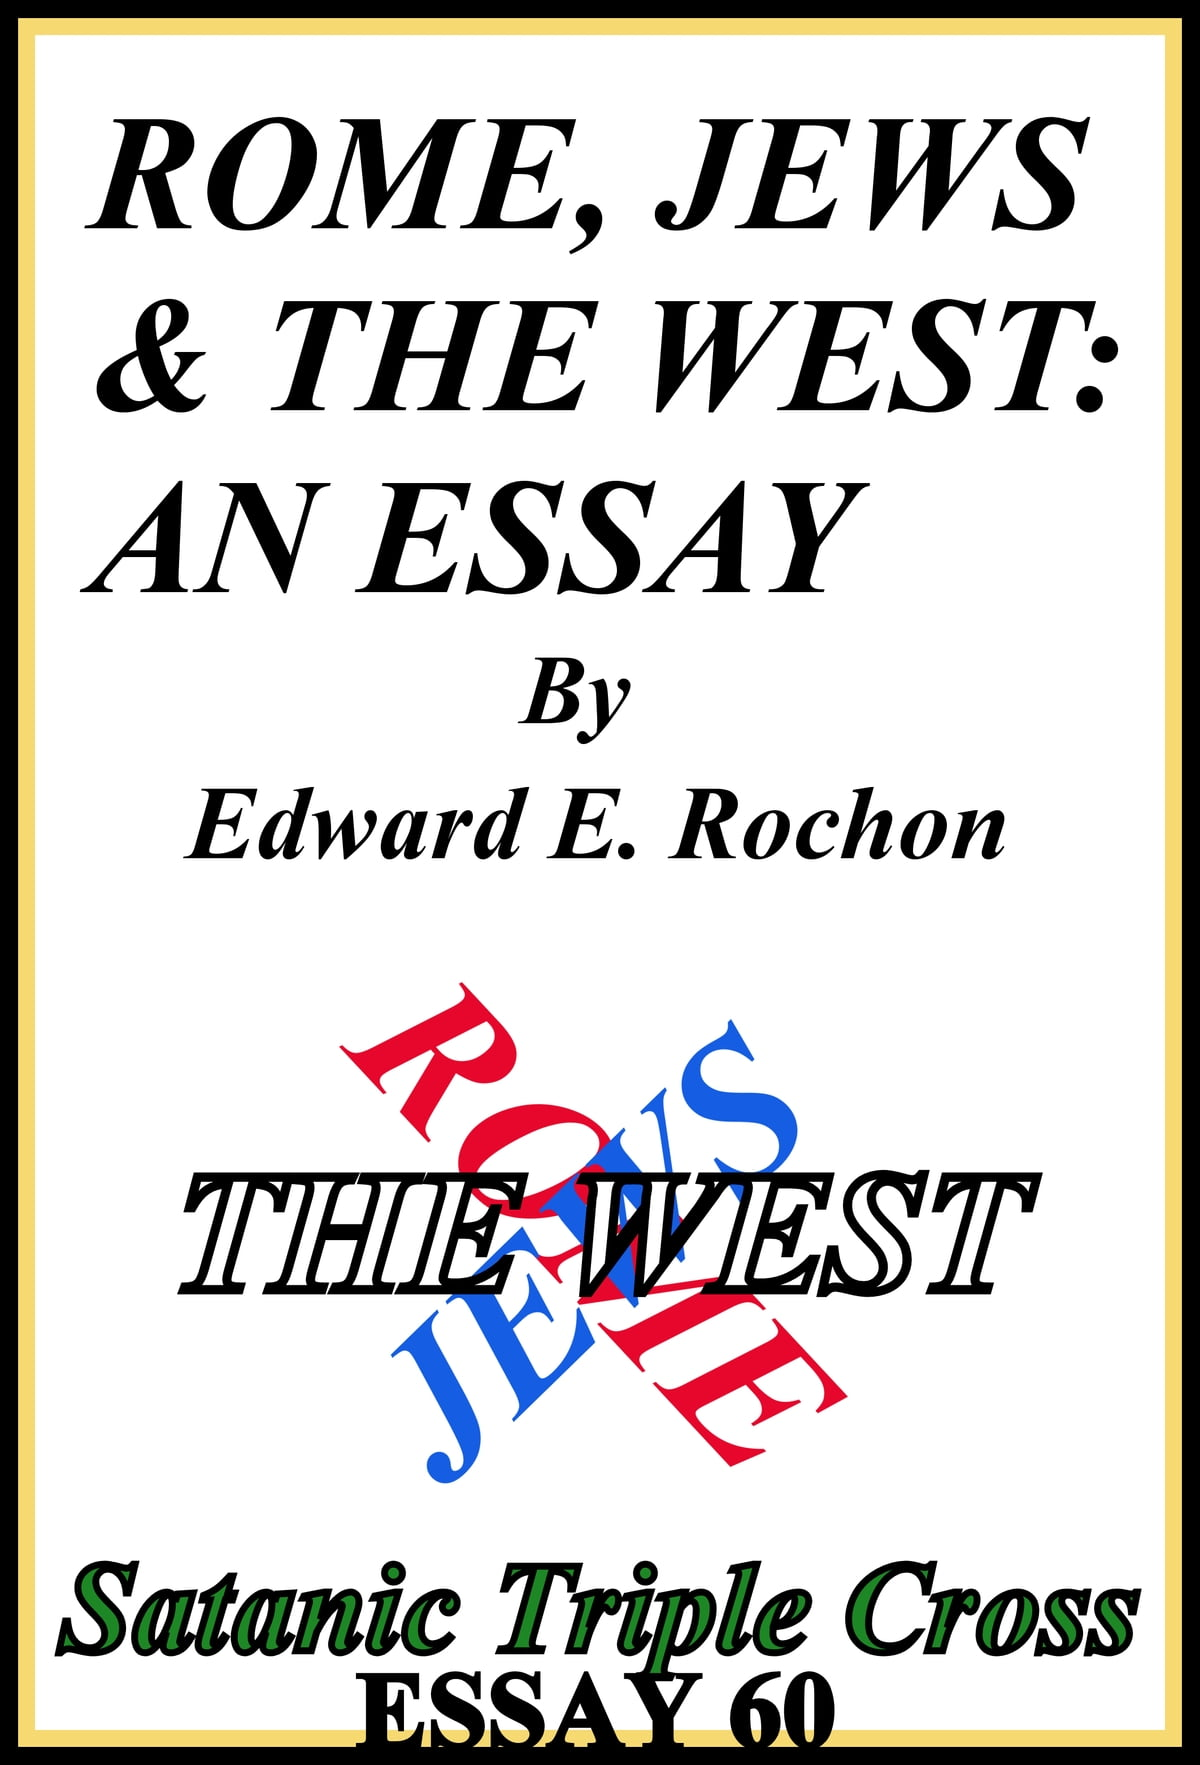 Rome Jews  The West An Essay Ebook By Edward E Rochon  Rome Jews  The West An Essay Ebook By Edward E Rochon     Rakuten Kobo Essay On Good Health also Professional Ghostwriter  Essay About Healthy Eating